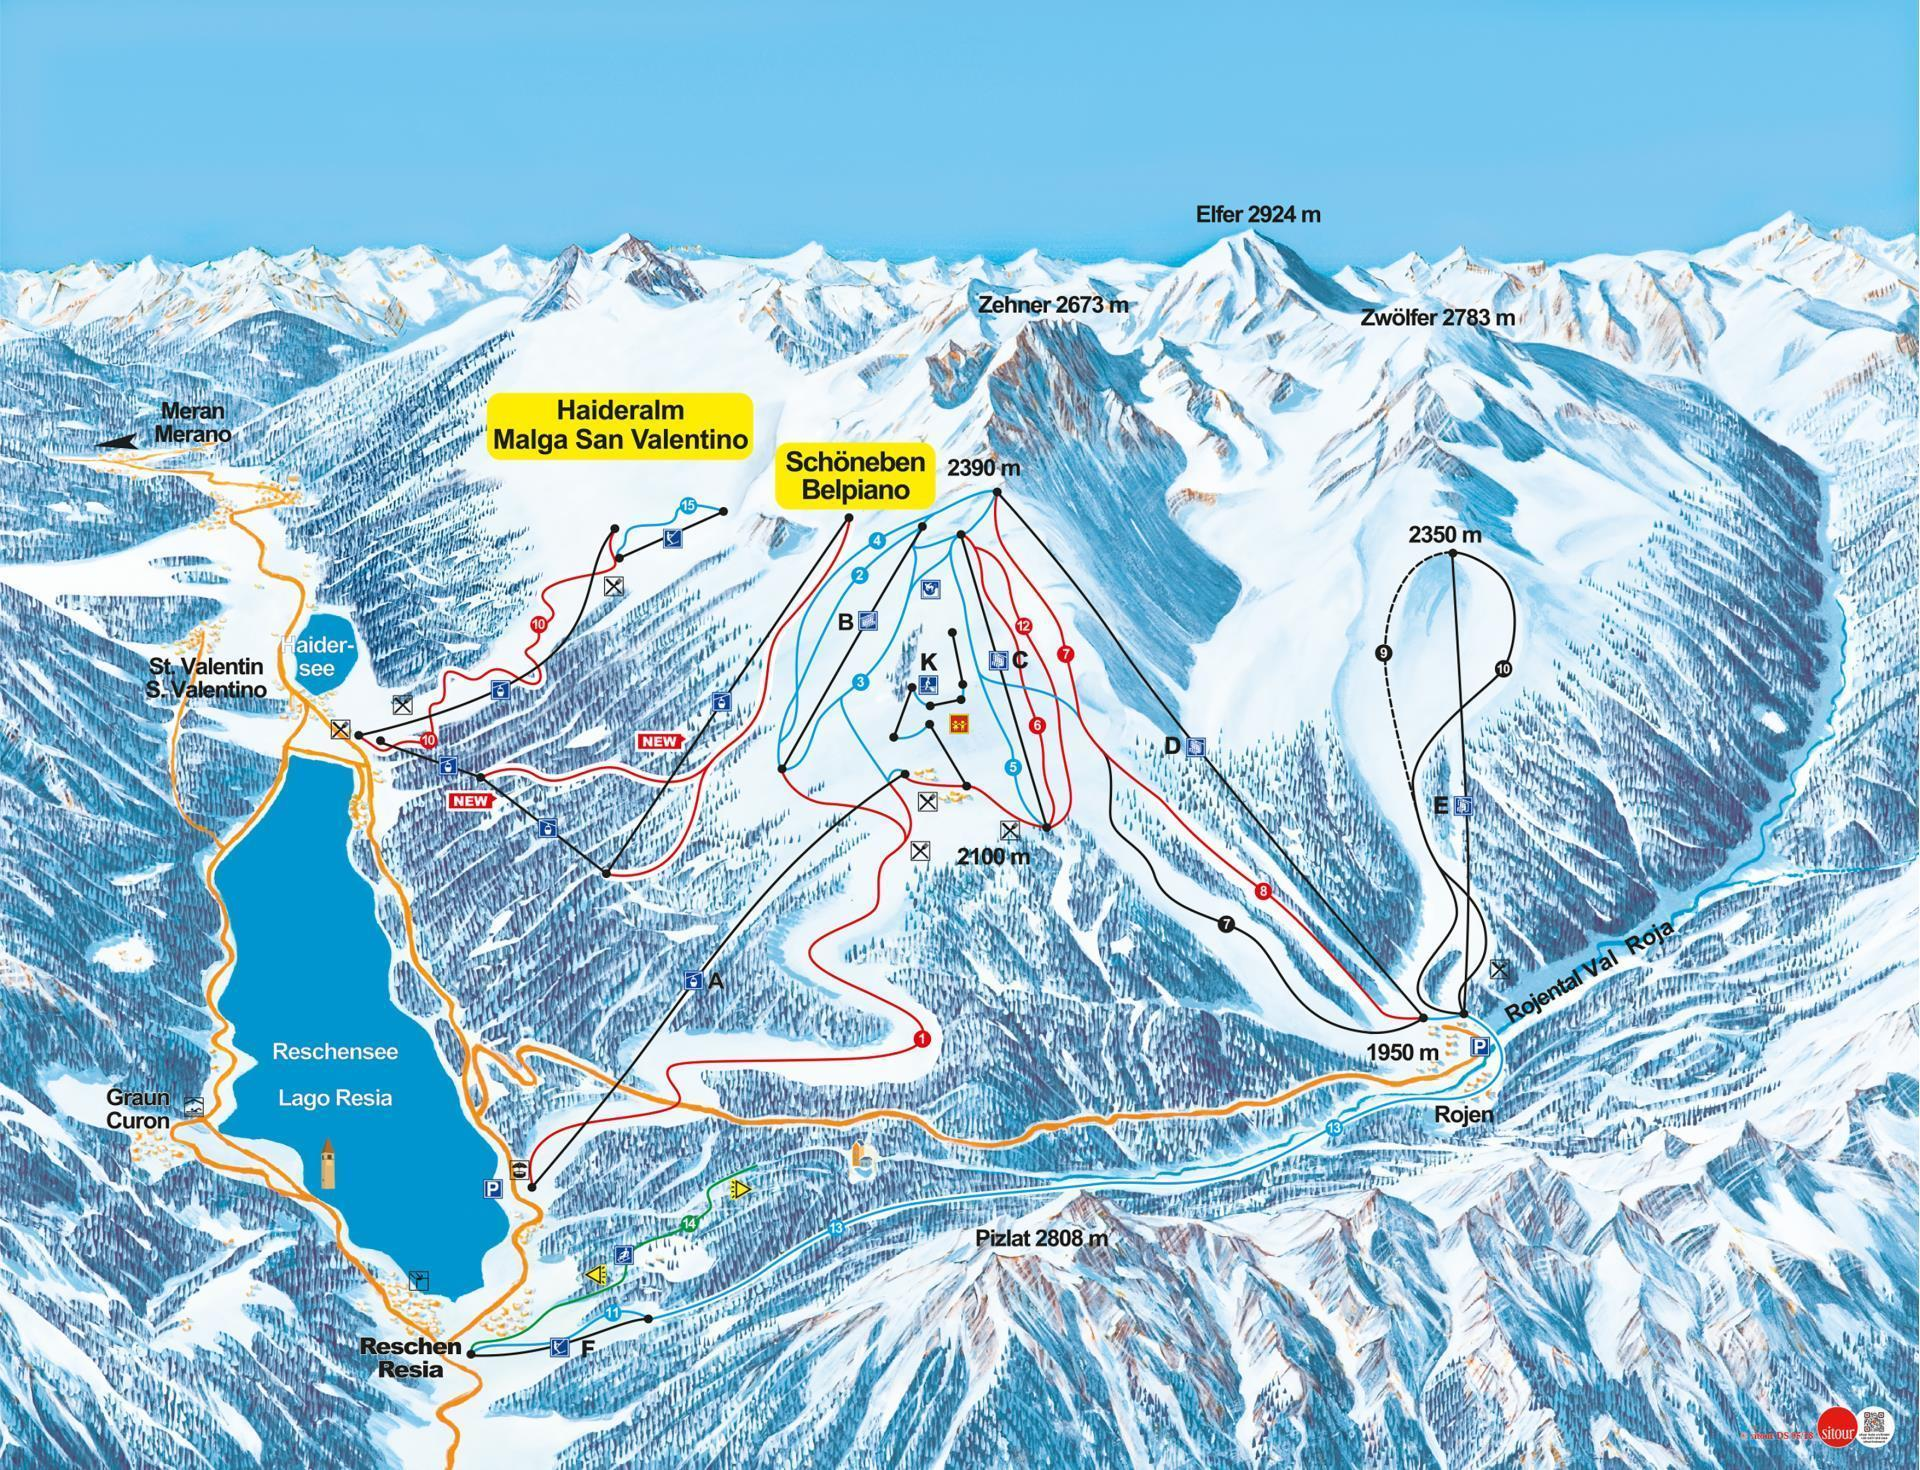 malga san valentino / haideralm piste map | plan of ski slopes and